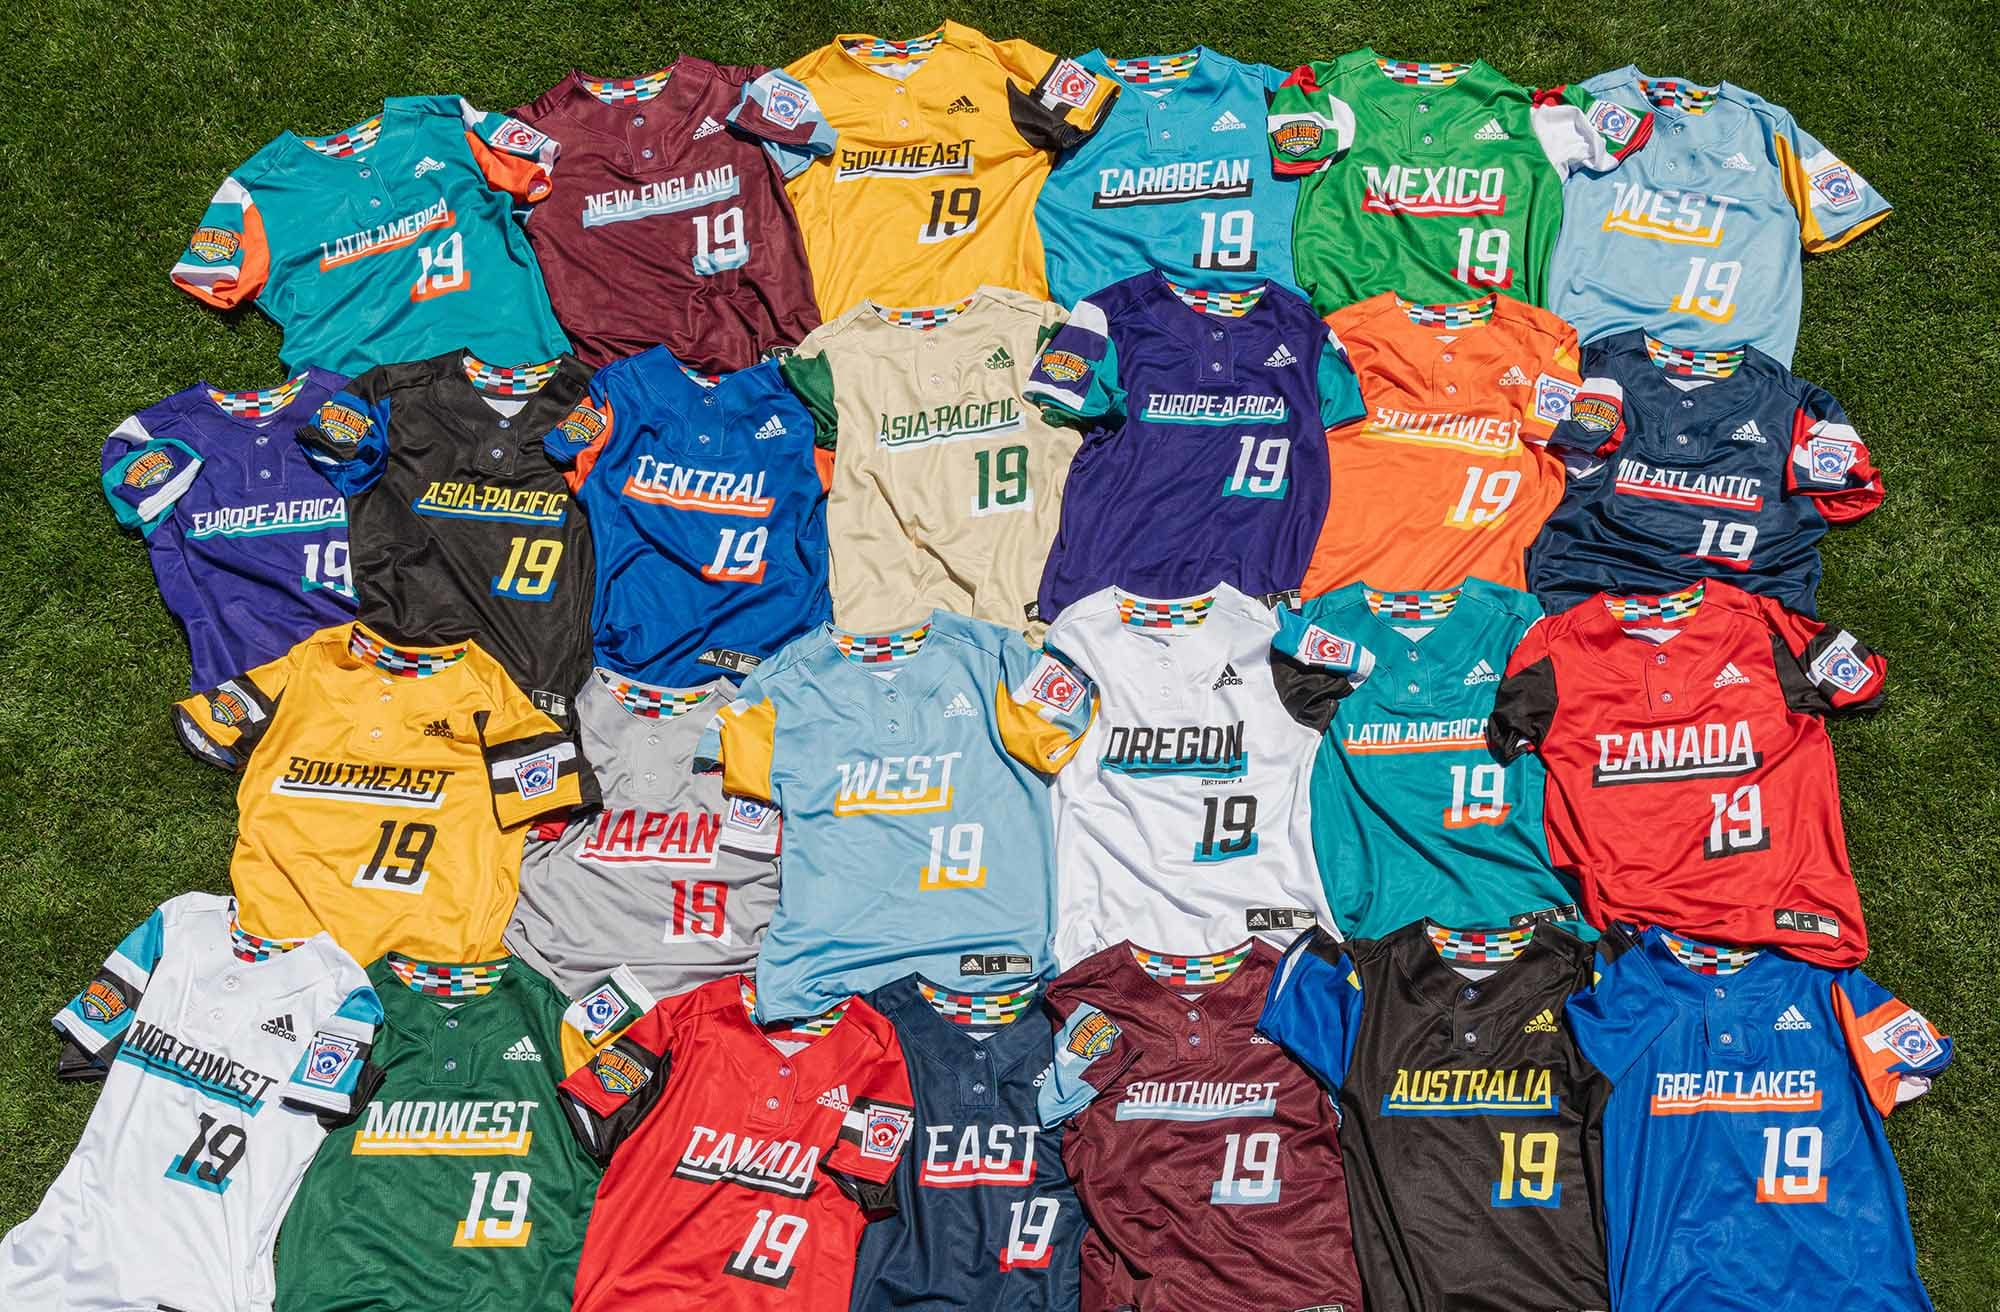 2019 LLWS Uniforms by adidas